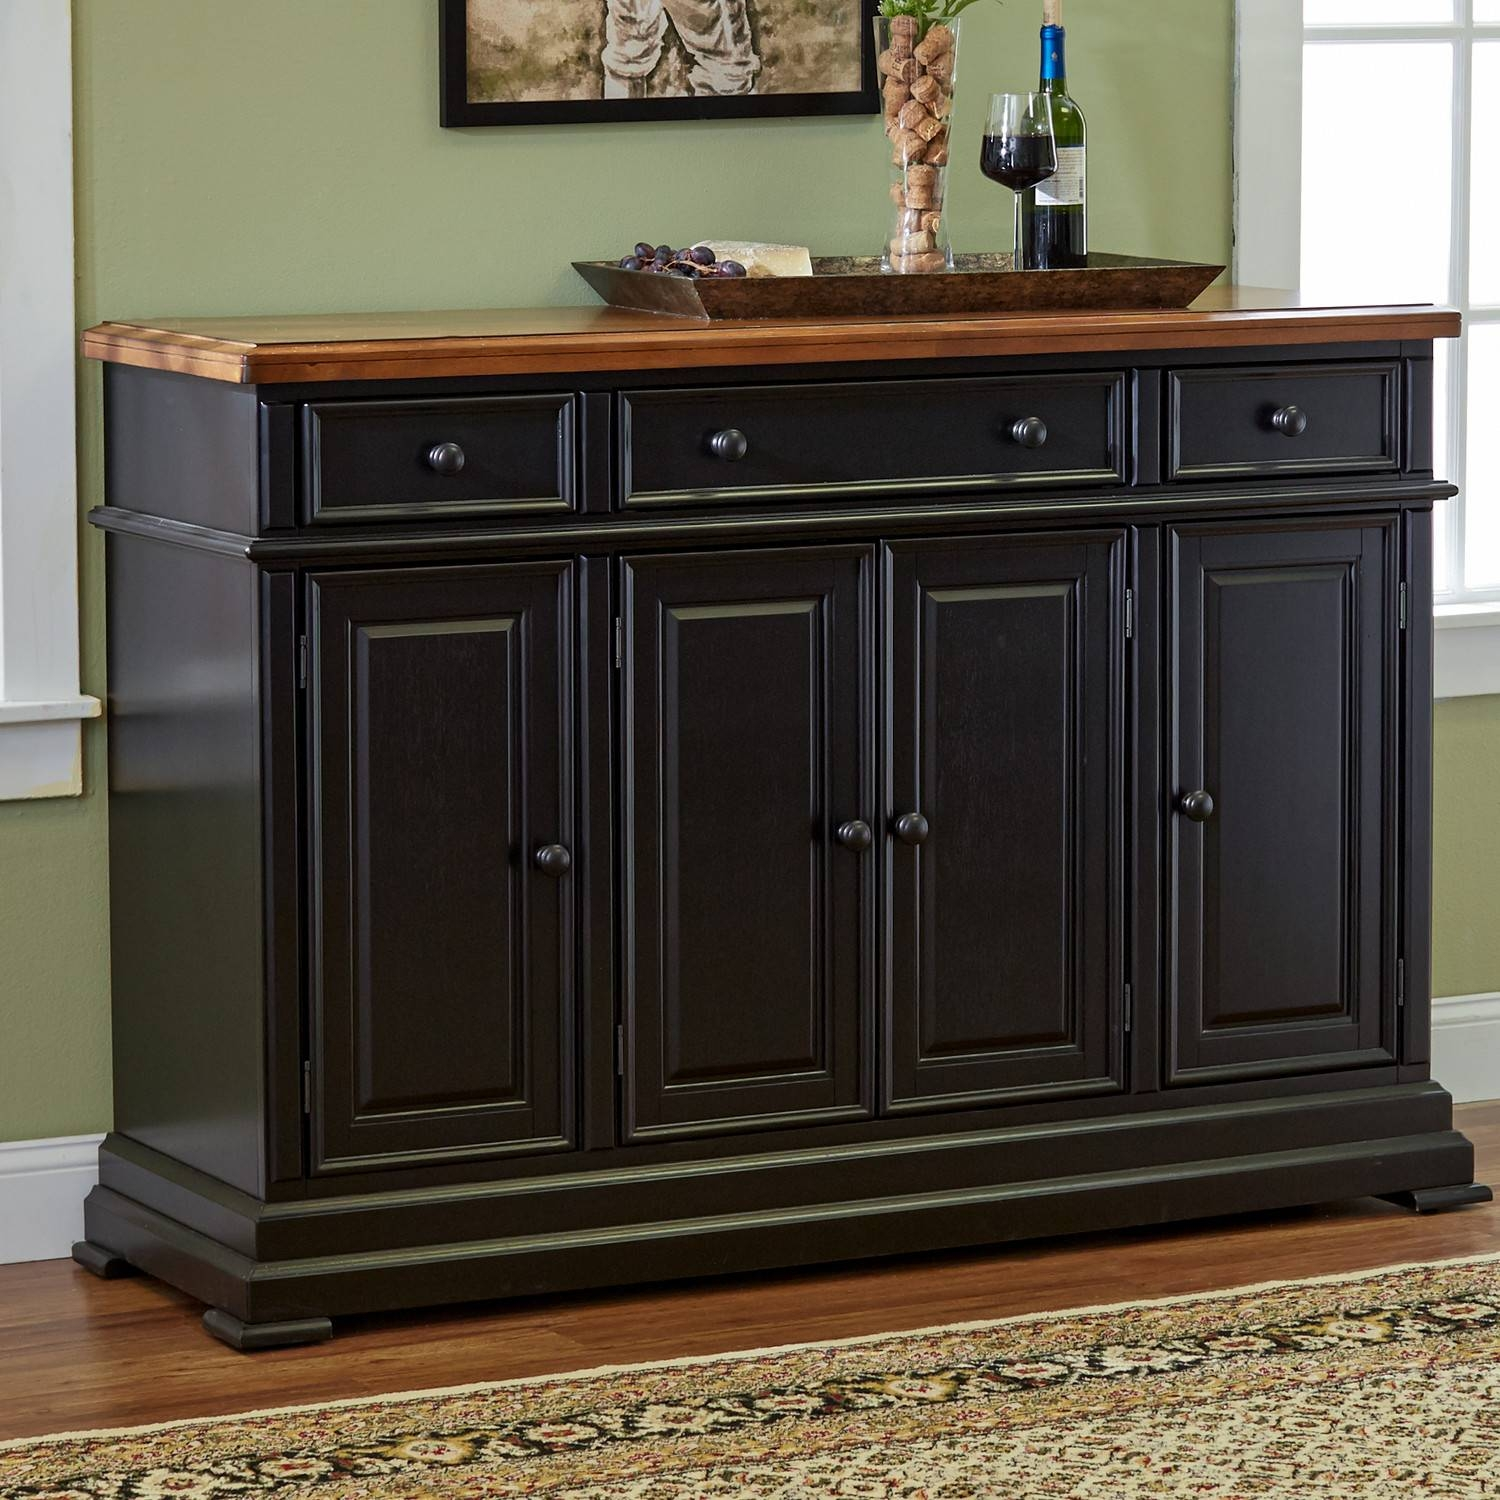 Furniture: White Sideboard Buffet With Unique Black Table Lamp And throughout Black Buffet Sideboards (Image 5 of 15)